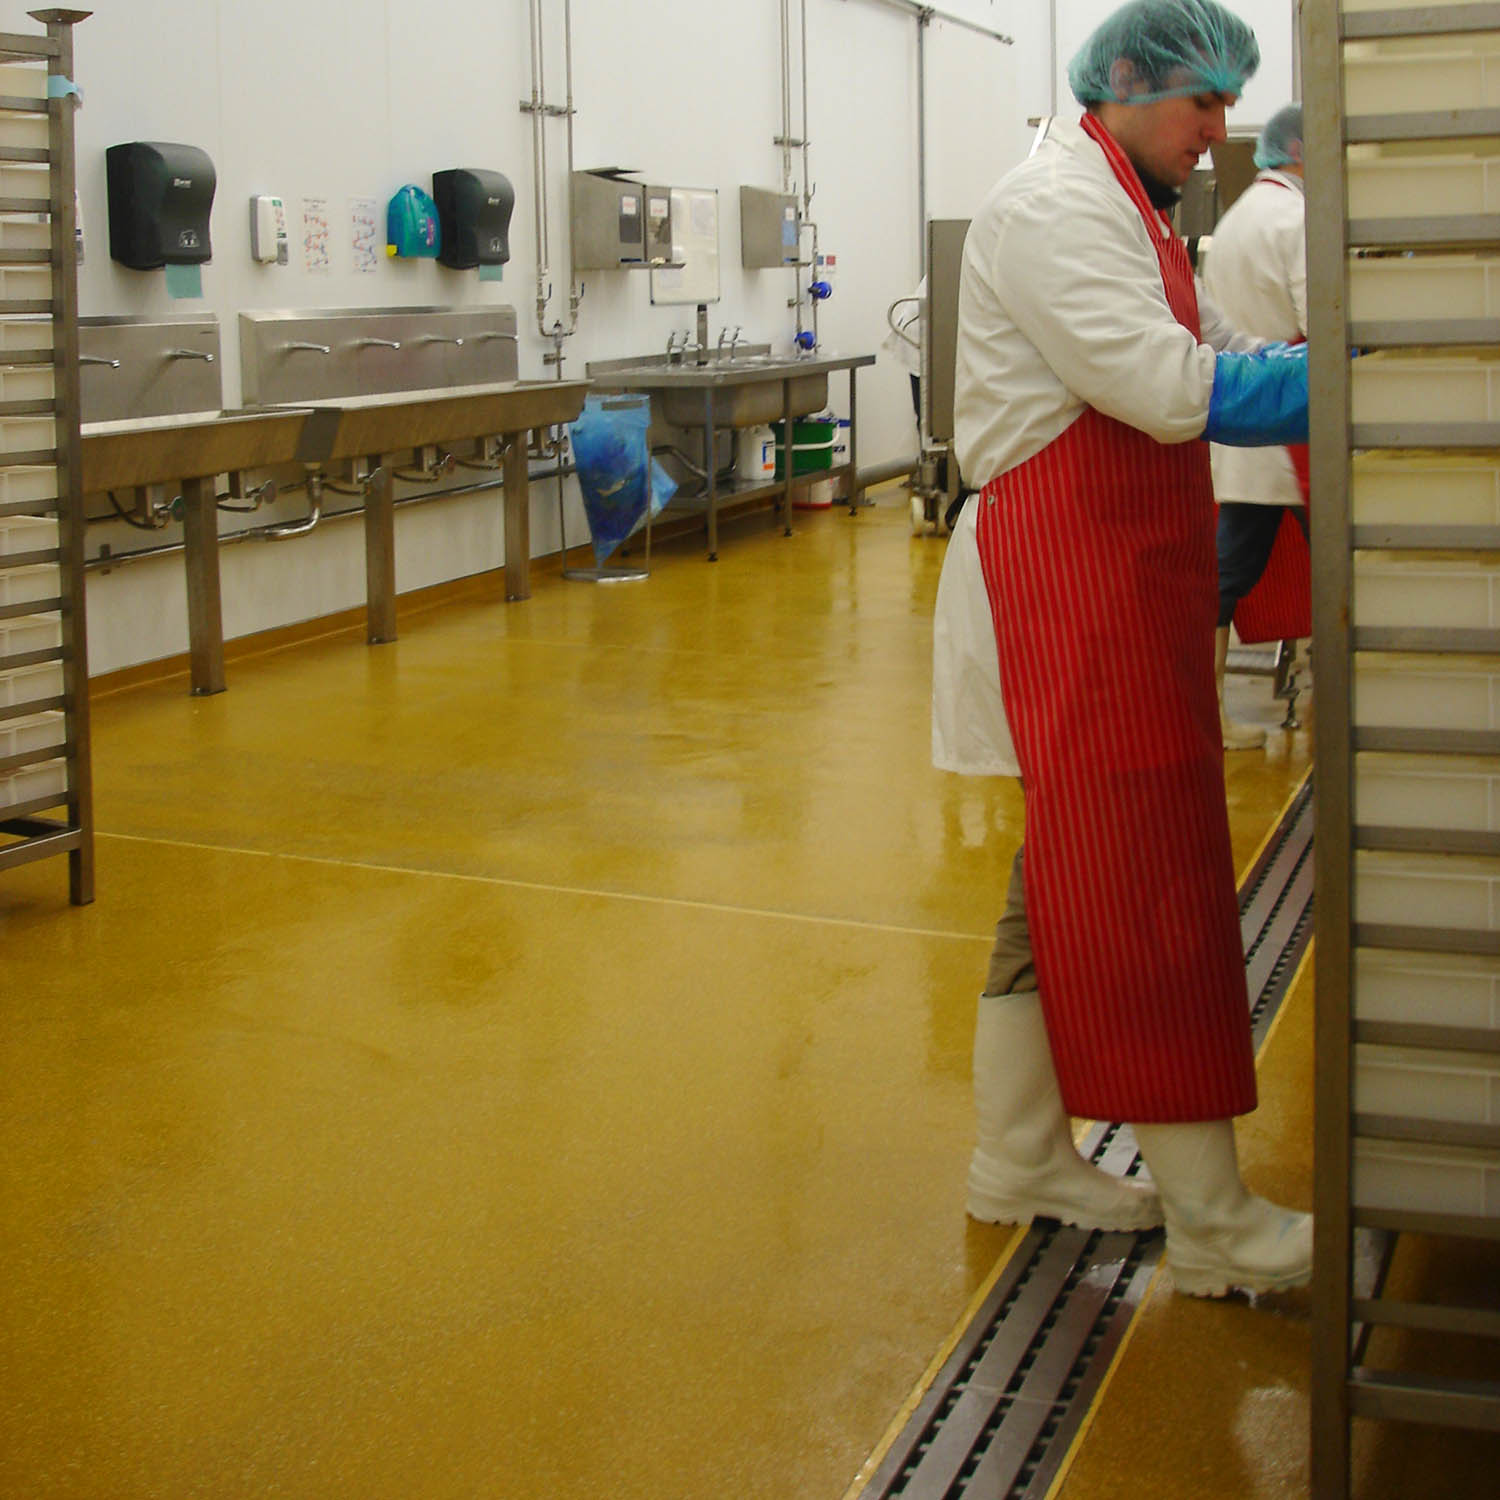 Hygienic flooring & drainage for food production